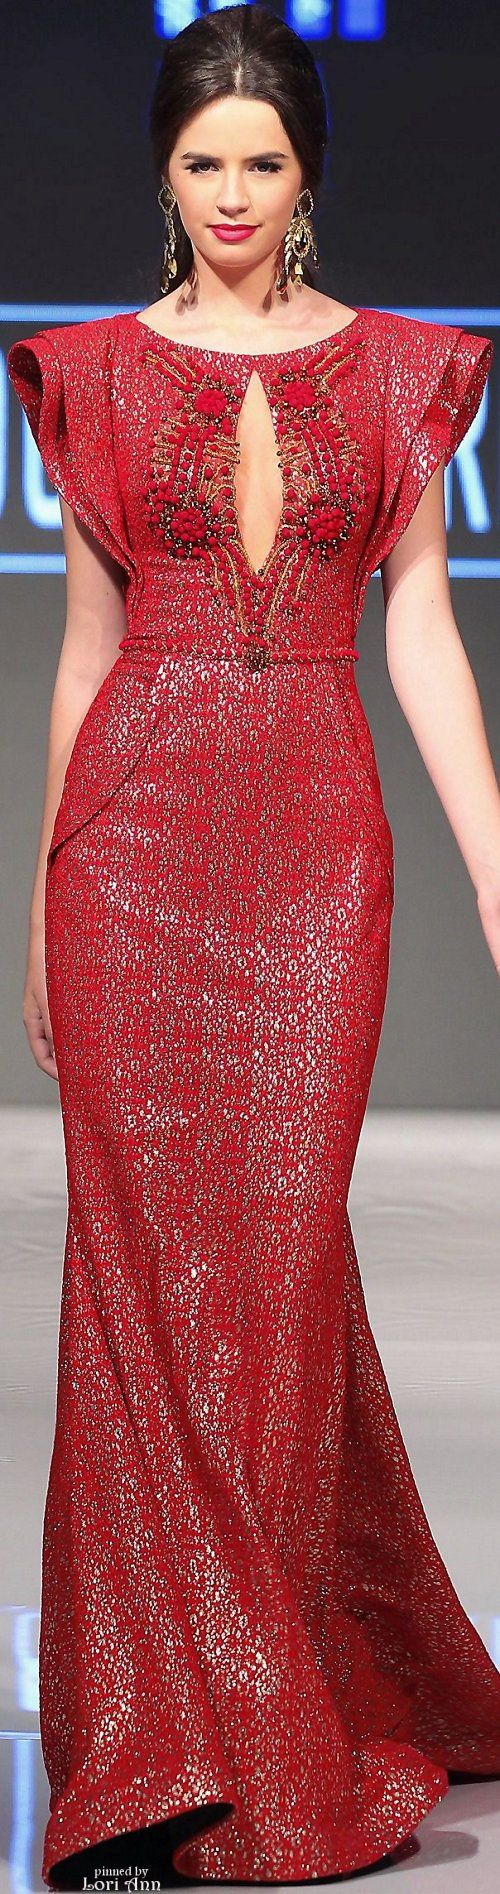 Fouad Sarkis Spring 2016 red dress women fashion outfit clothing style apparel @roressclothes closet ideas